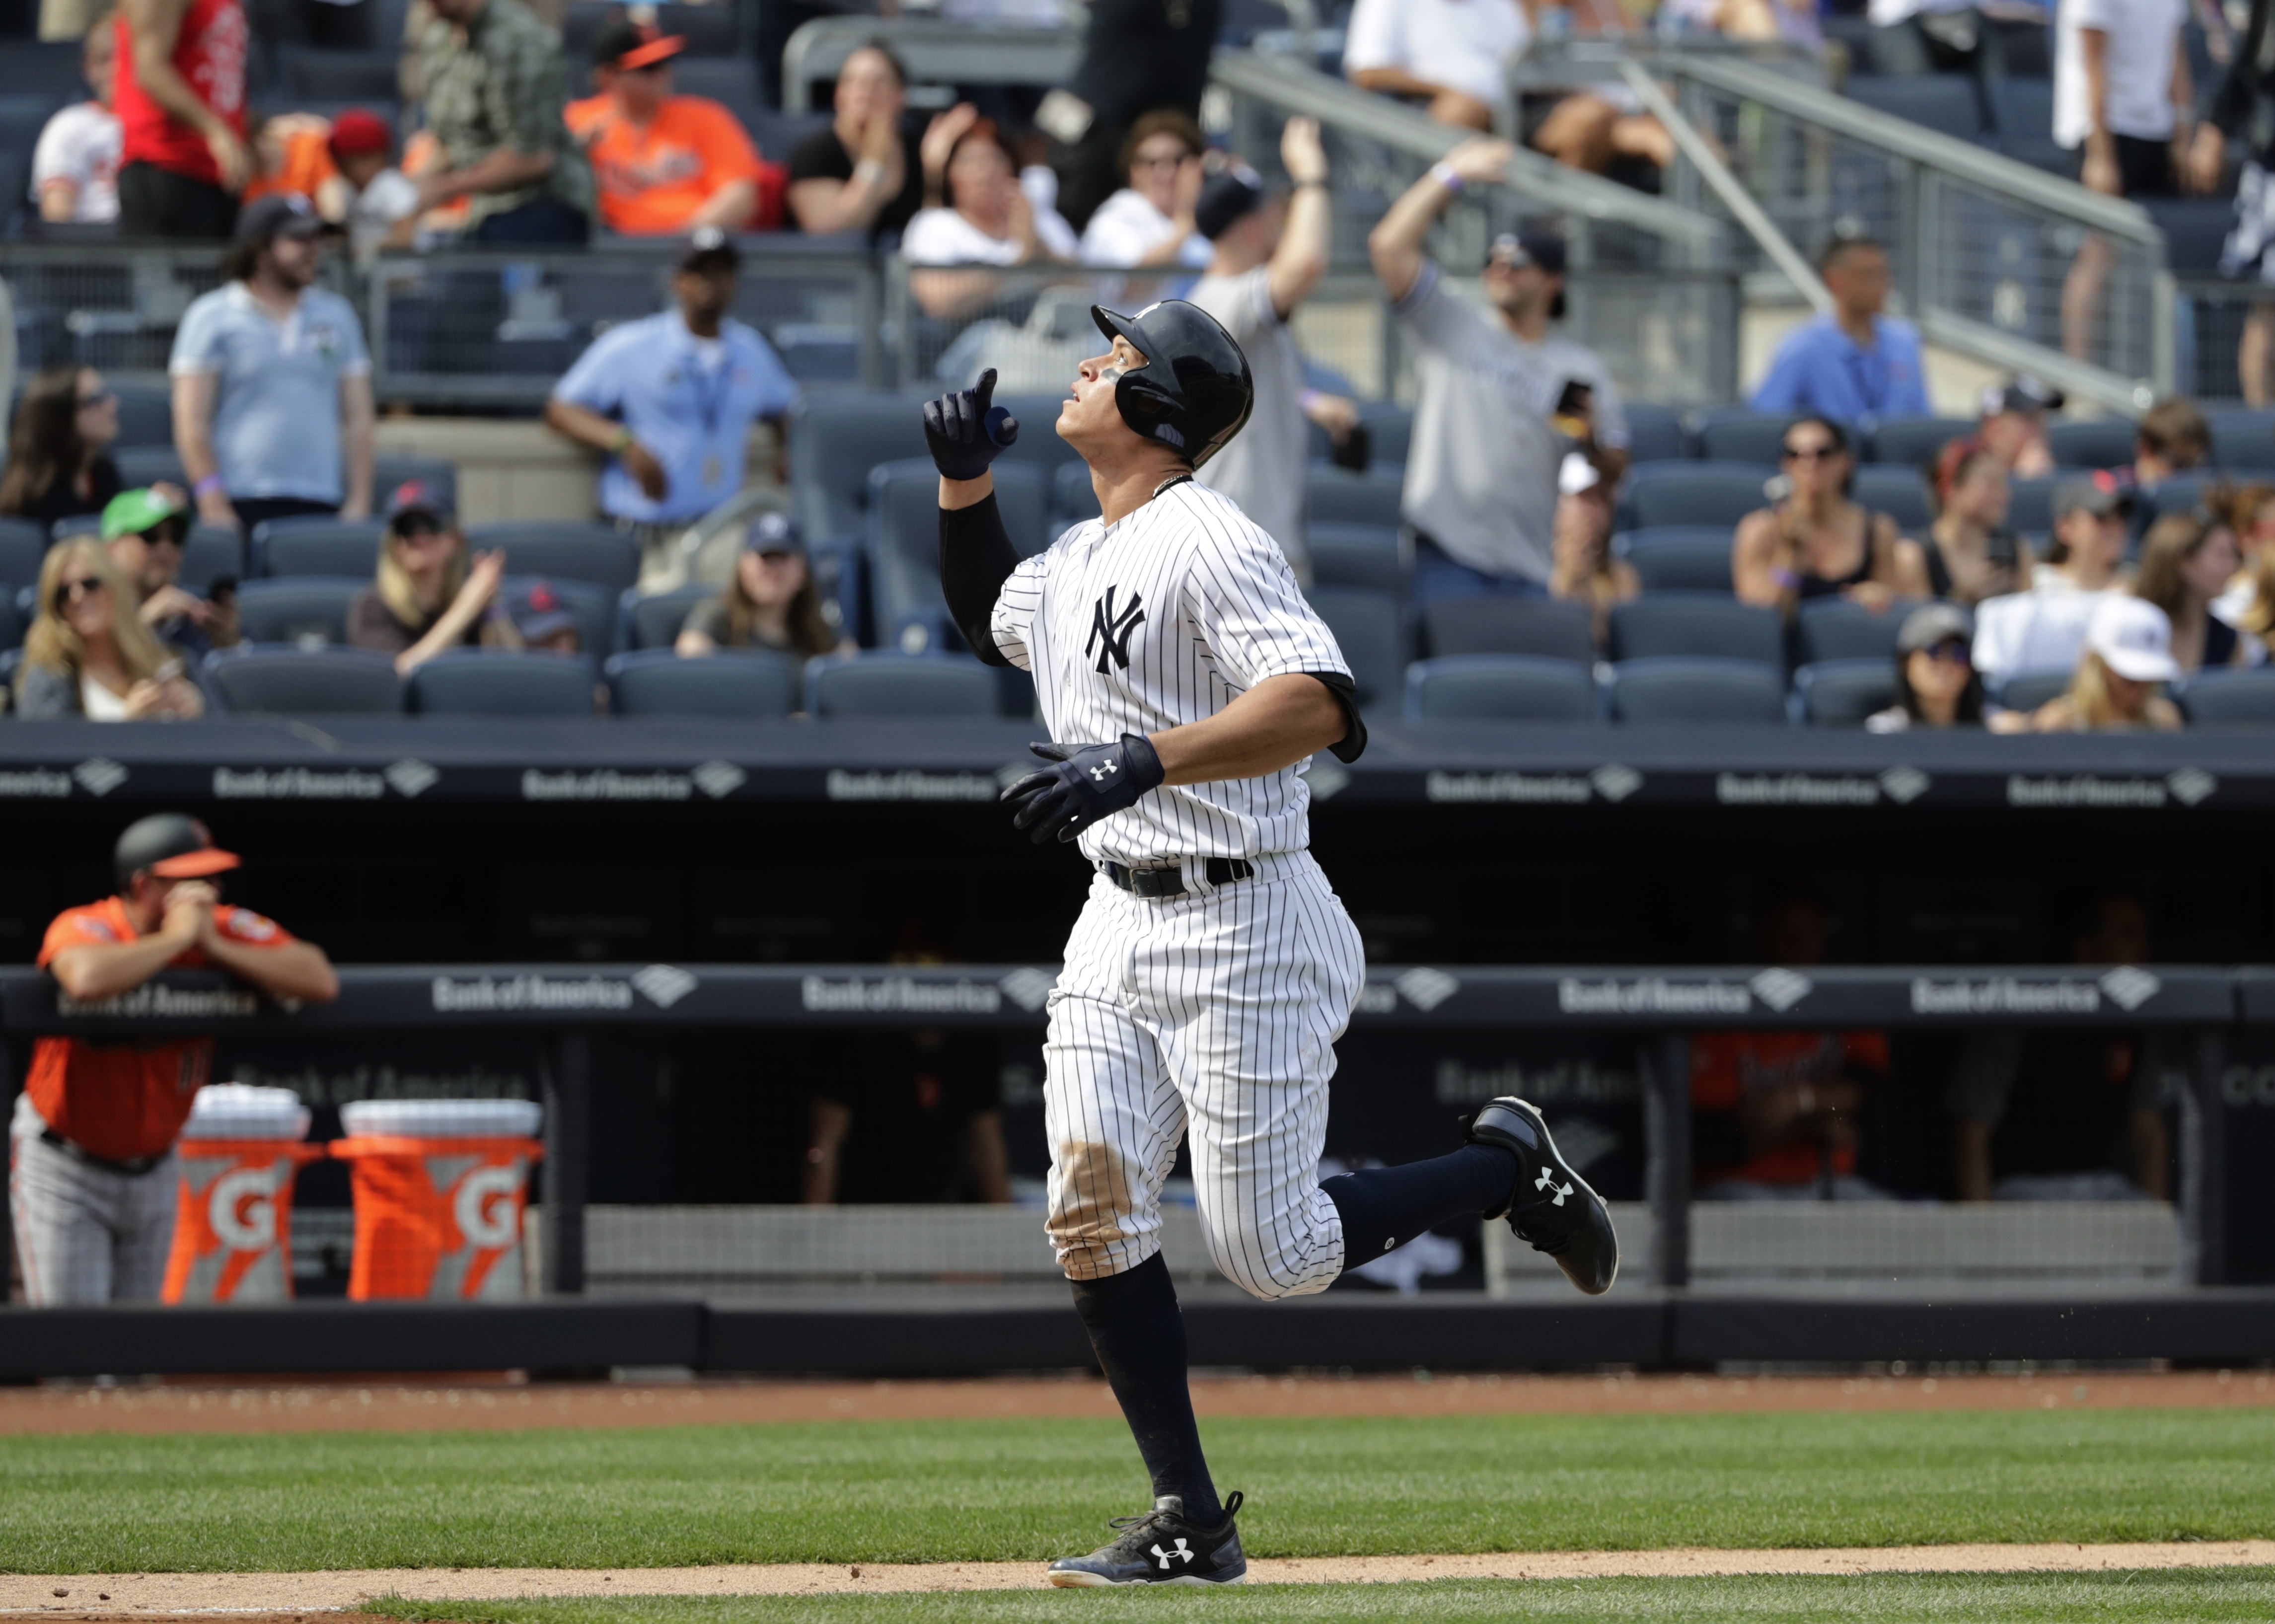 "<div class=""meta image-caption""><div class=""origin-logo origin-image ap""><span>AP</span></div><span class=""caption-text"">Aaron Judge gestures as he runs the bases after hitting a 435 foot home run against the Baltimore Orioles Saturday, April 29, 2017, in New York. (Frank Franklin II)</span></div>"